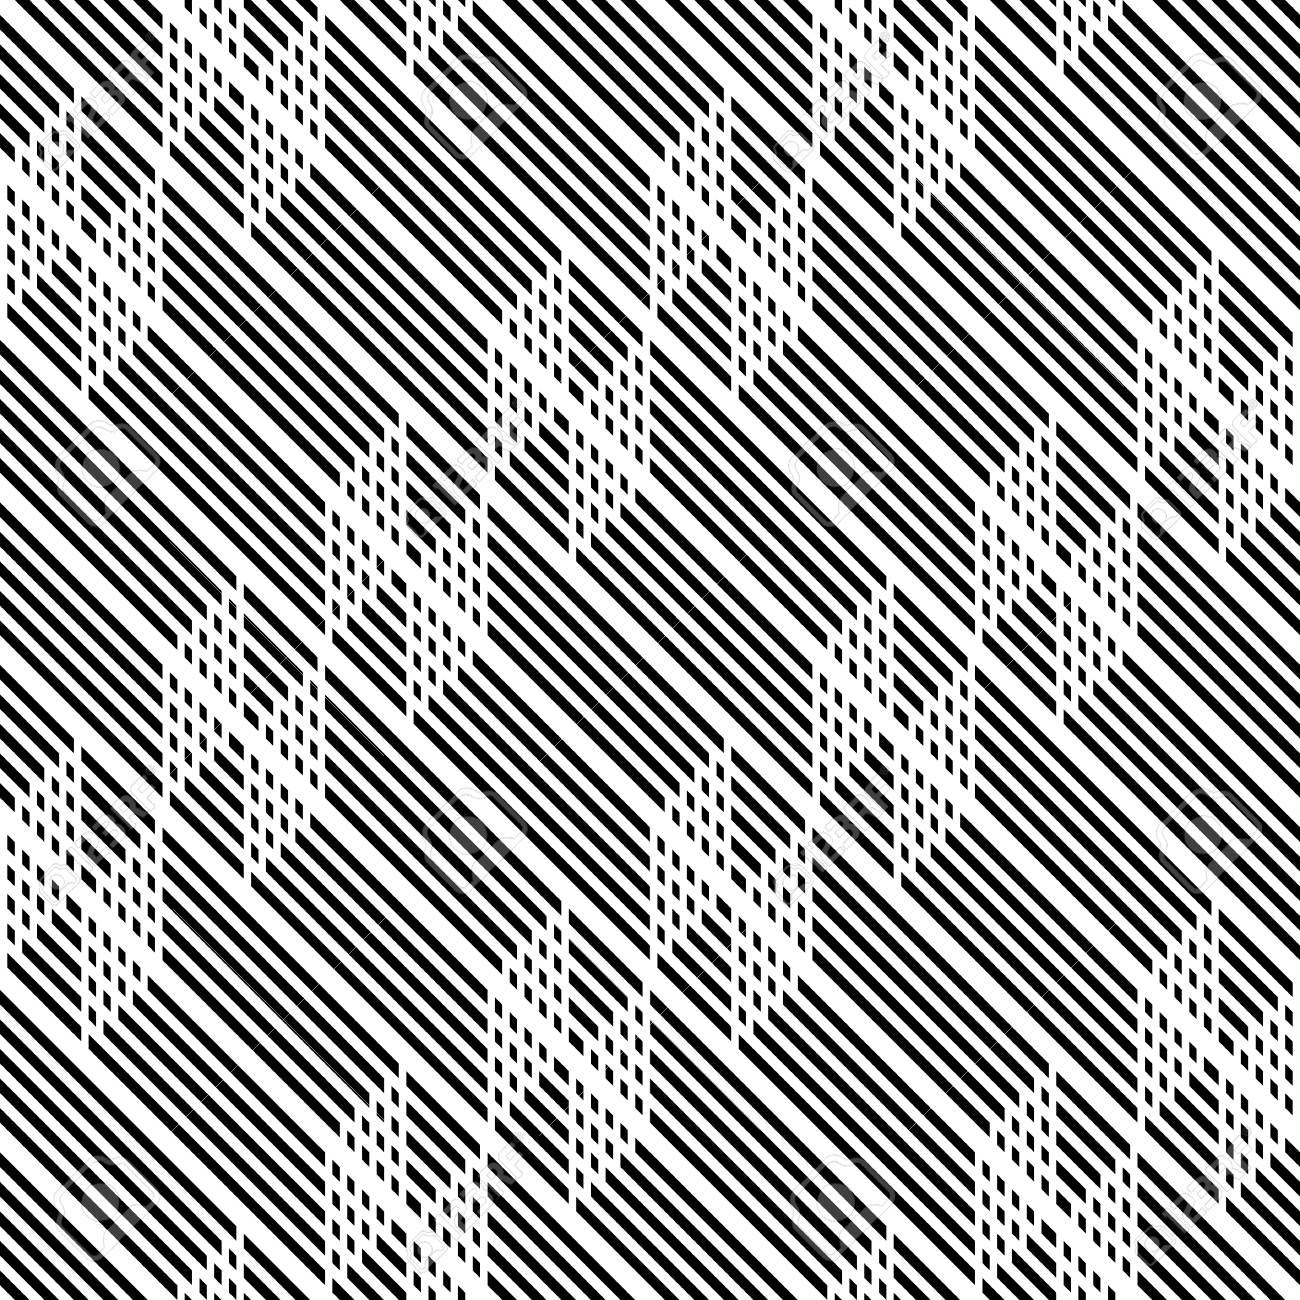 Design seamless monochrome zigzag pattern. Abstract background. Vector art - 125247561